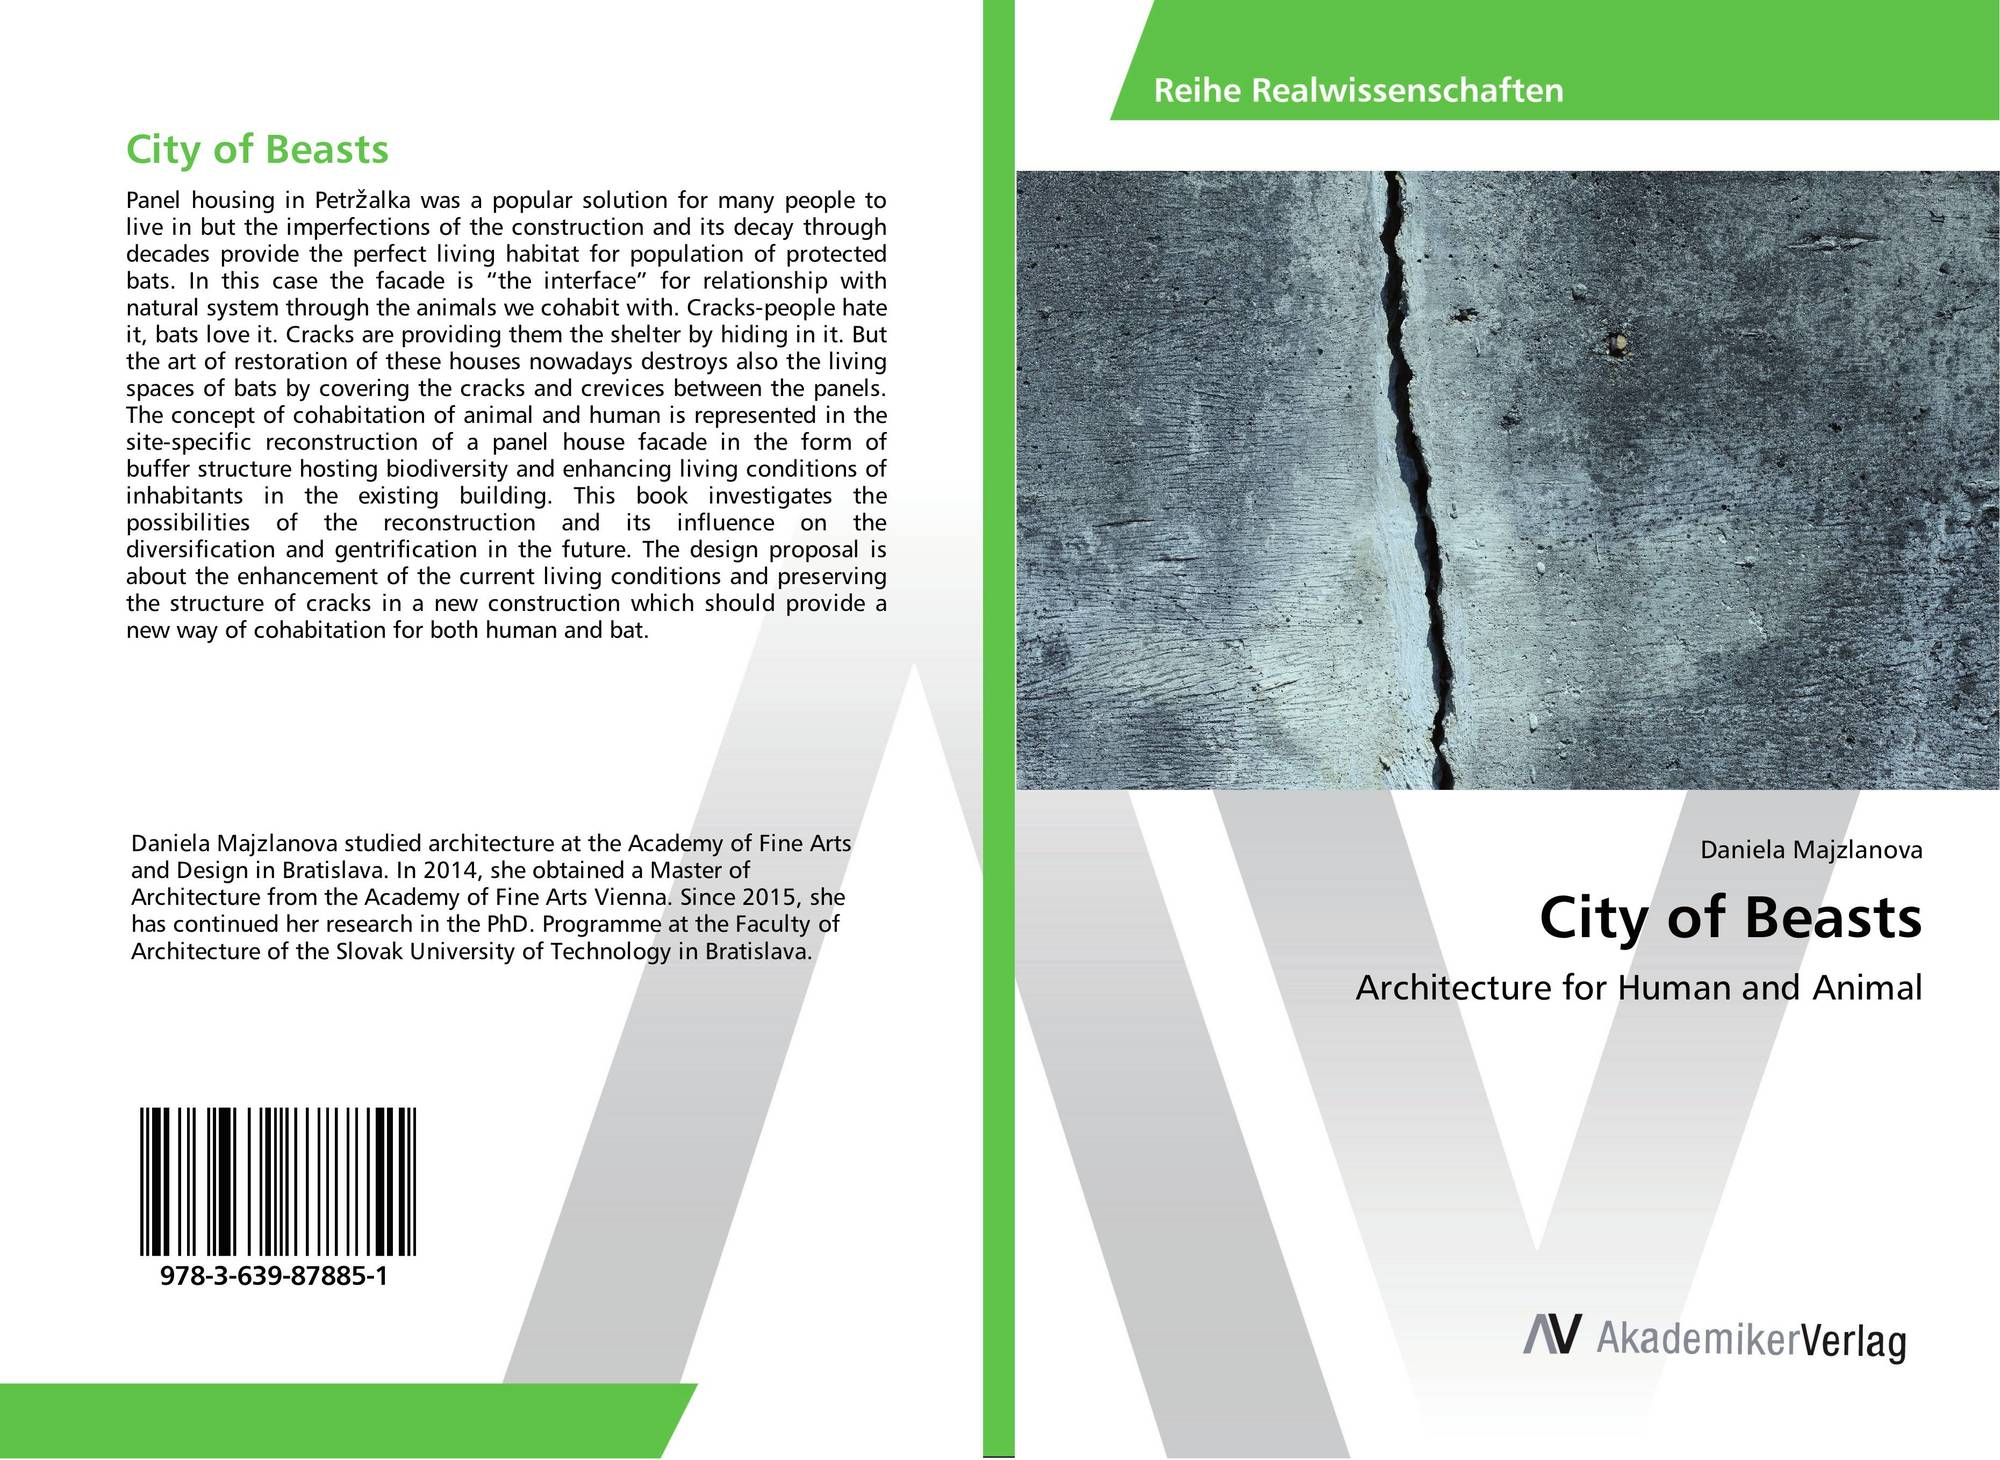 city of the beasts novel dialectical We have now a novel that gives significant order and emphasis to the narrative qualities and the ethical issues developed throughout mailer's fiction and nonfiction career chief among these qualities and issues is the dialectic between vitality and entropy those opposing forces create the conflict behind.